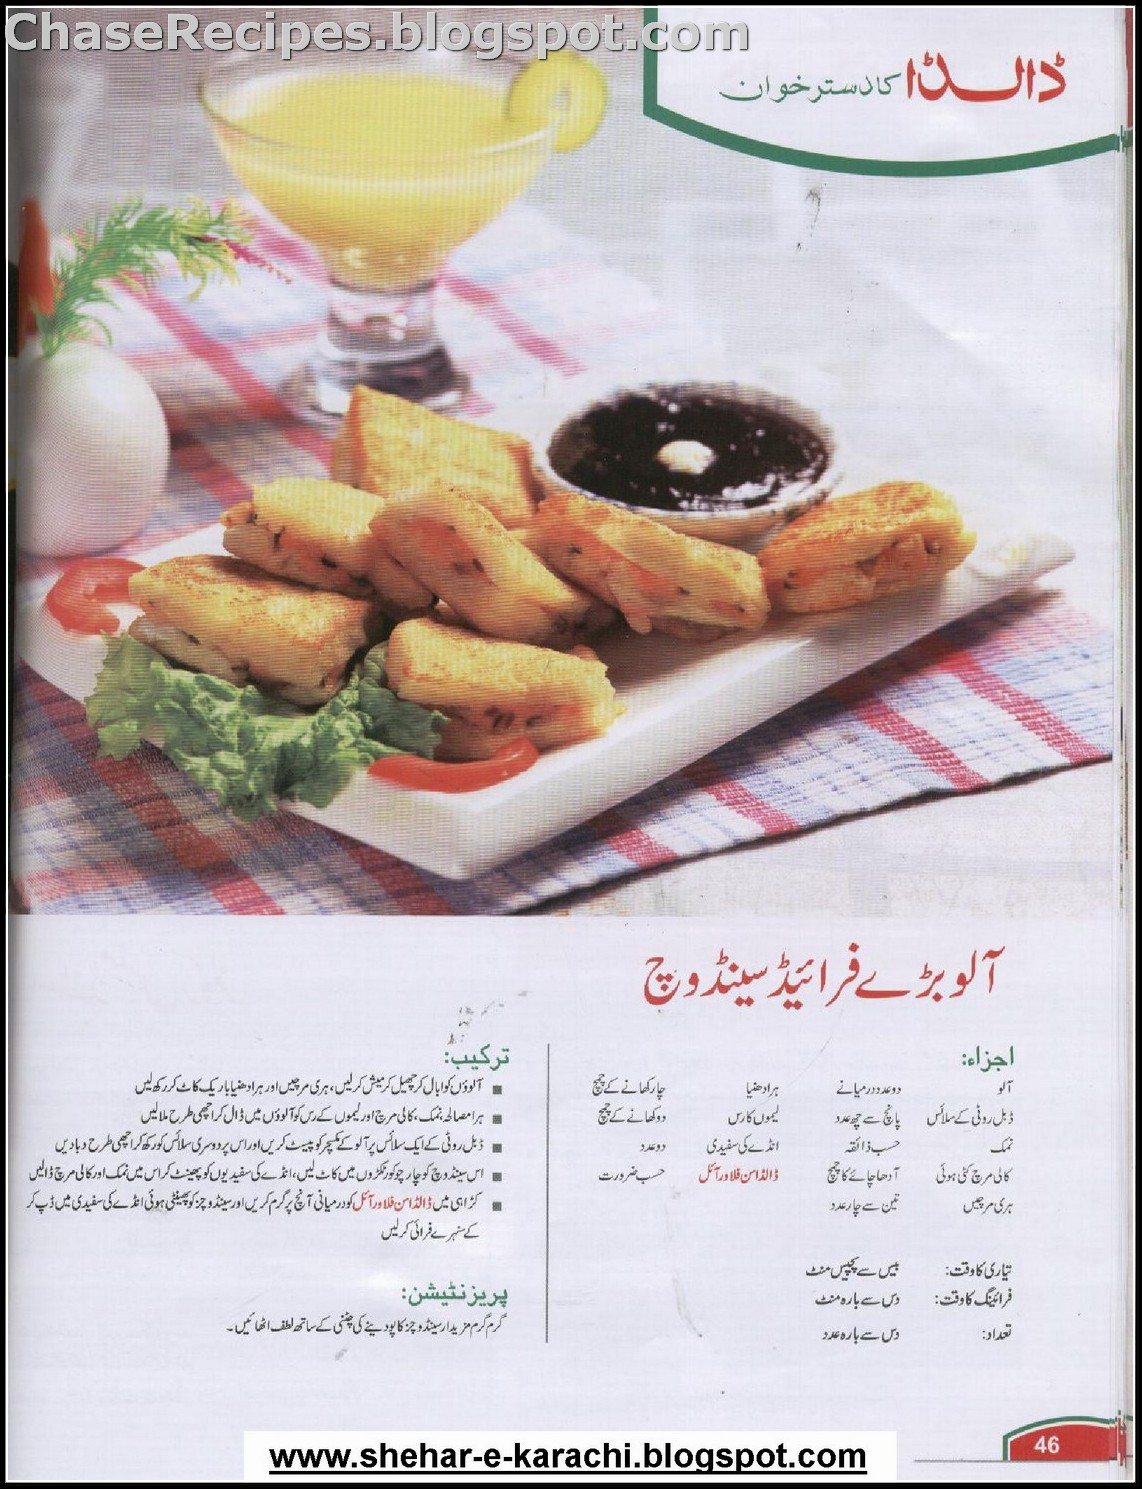 Aloo bharay fried sandwich recipe in urduhindi dalda chase recipes aloo bharay fried sandwich recipe in urduhindi dalda forumfinder Choice Image